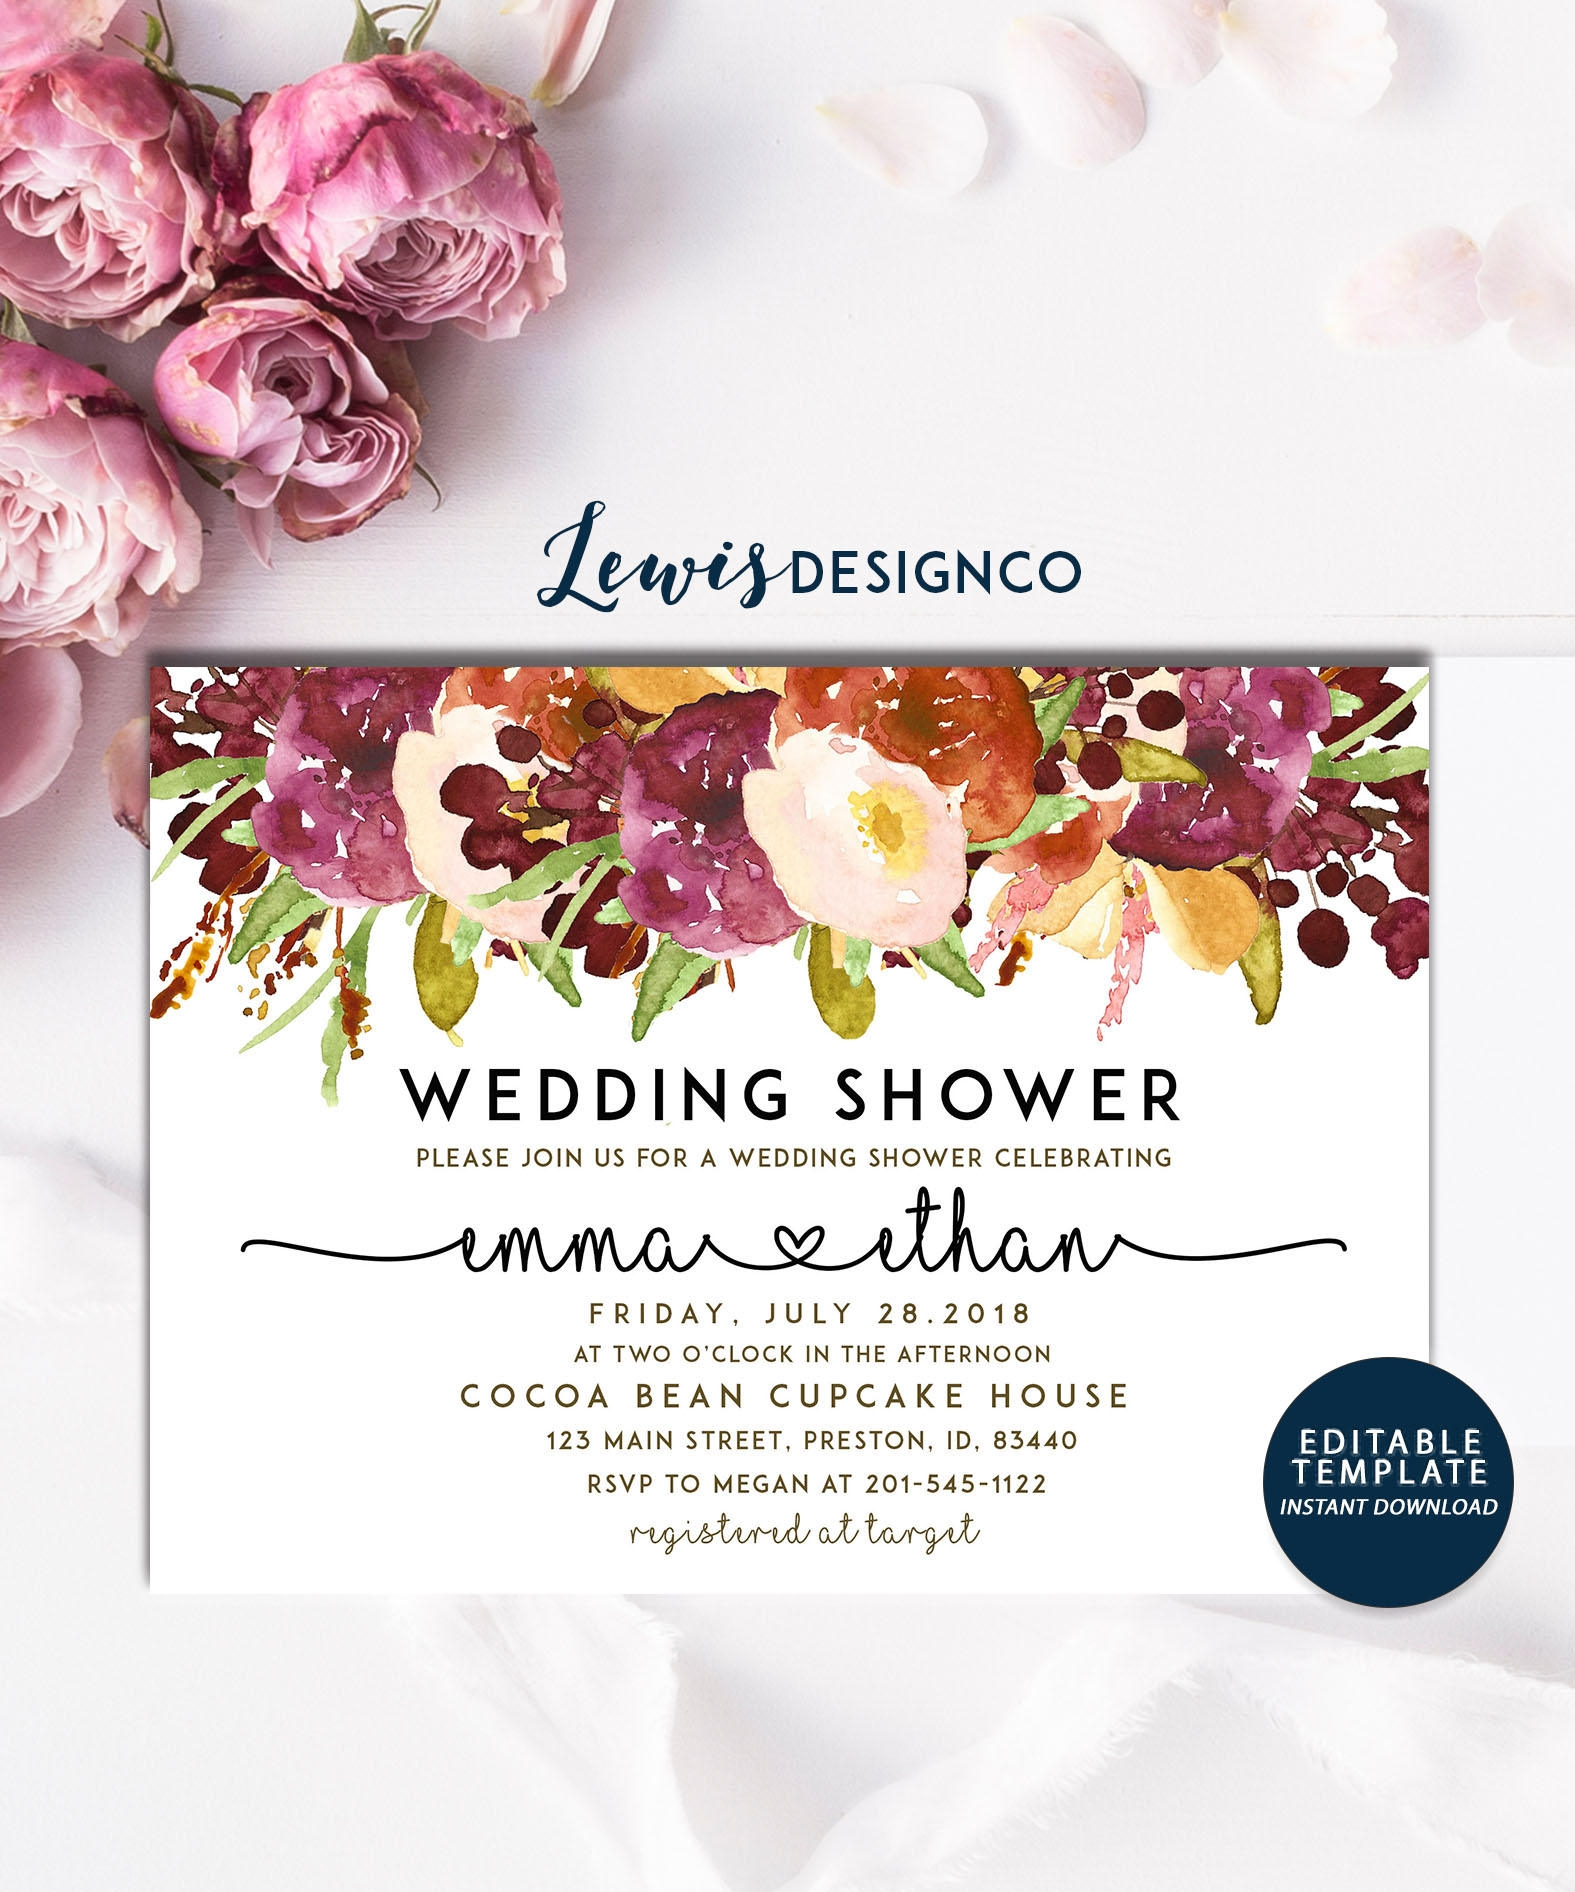 19+ Wedding Shower Invitation Designs and Examples - PSD, AI